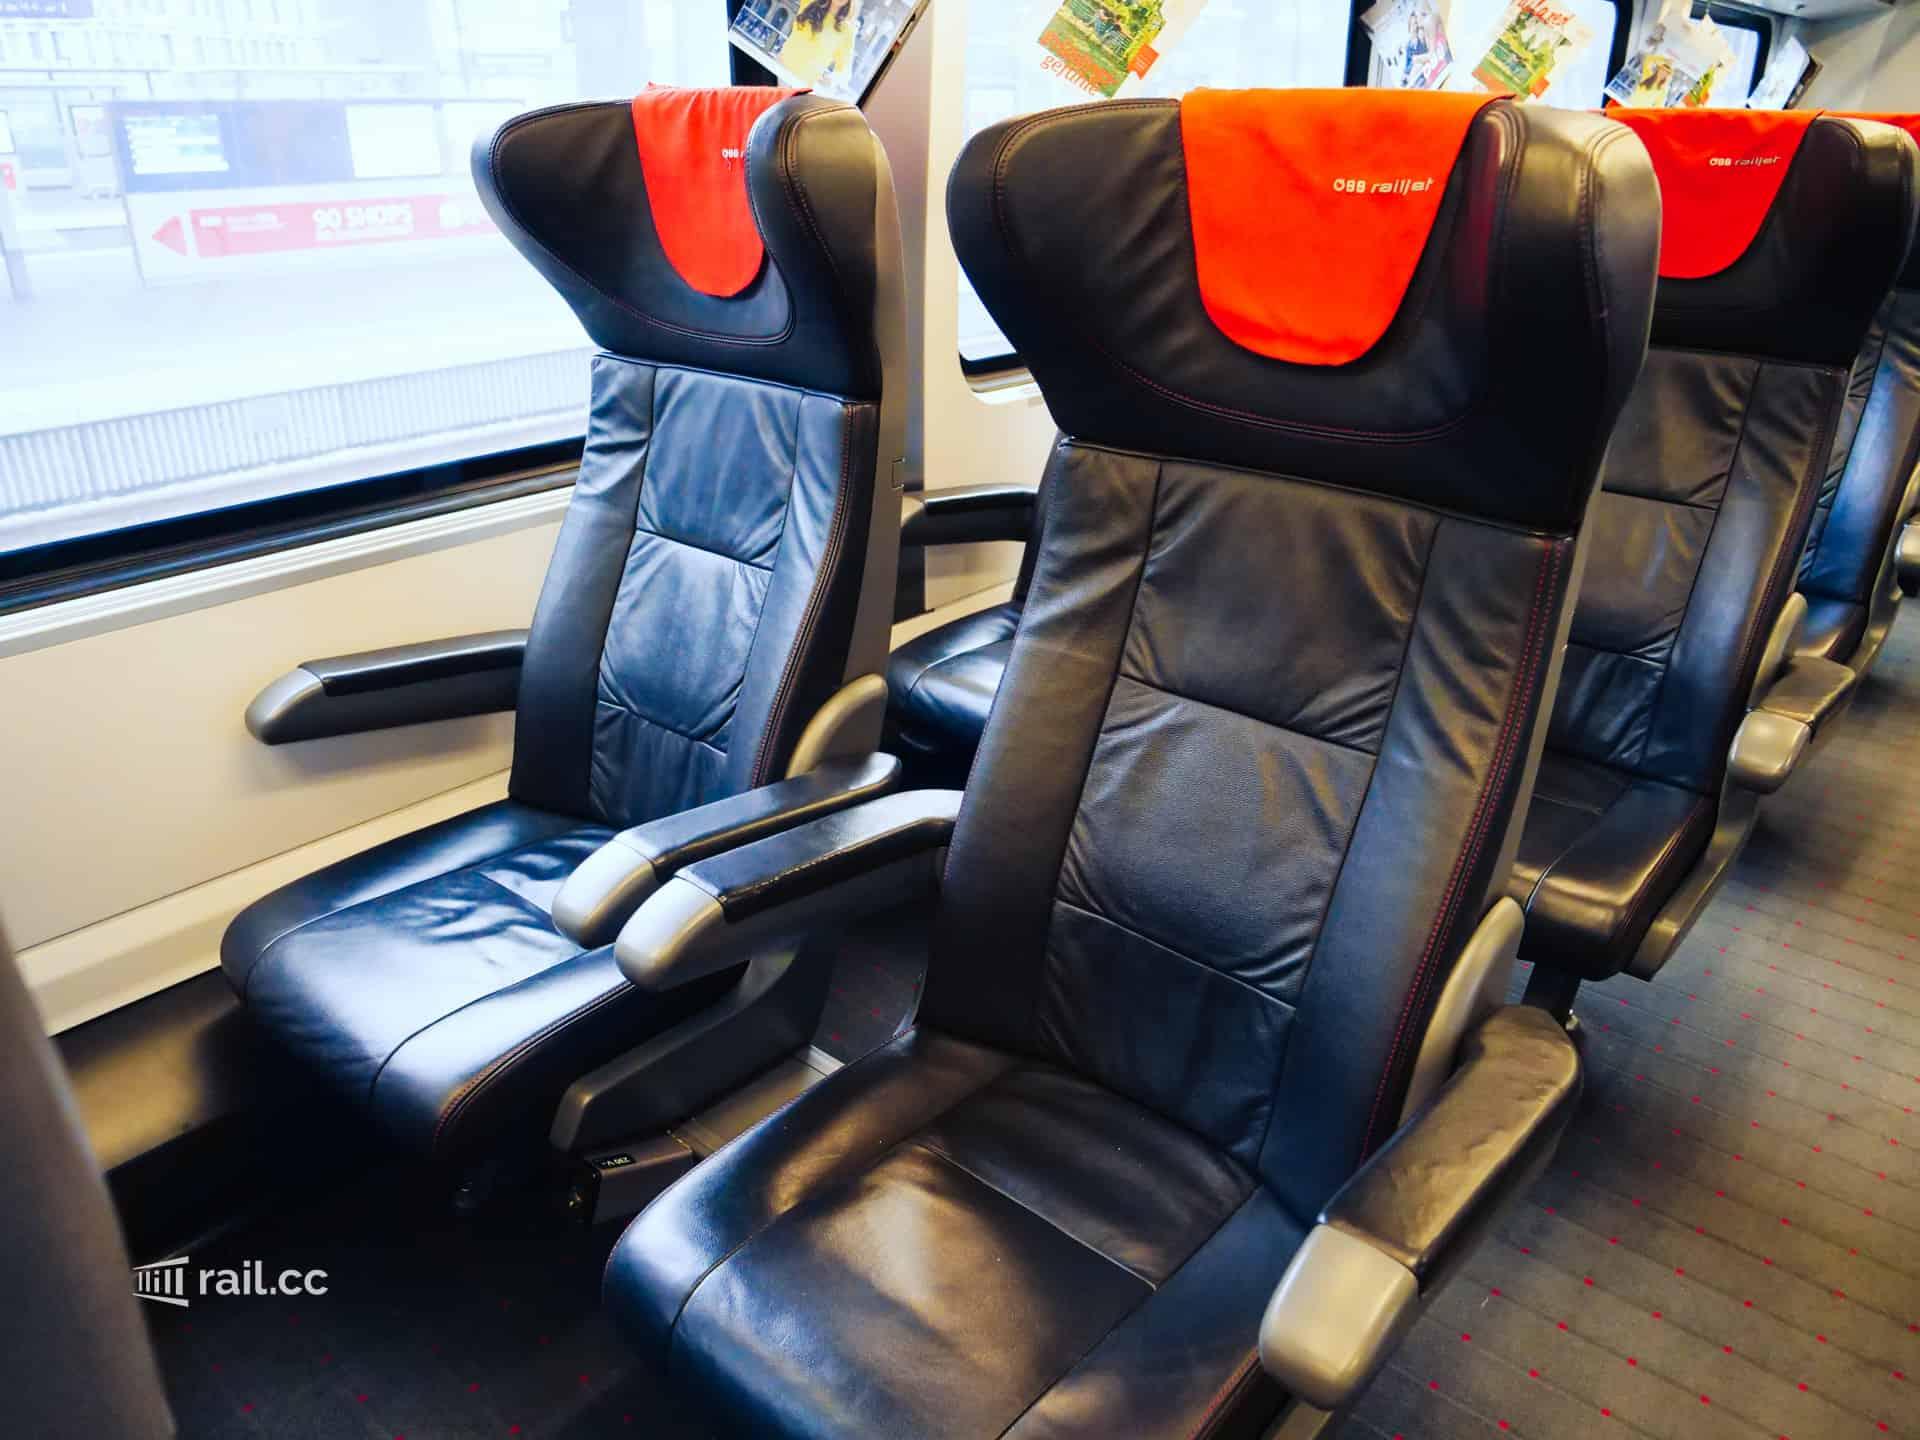 Seats in the Railjet First Class